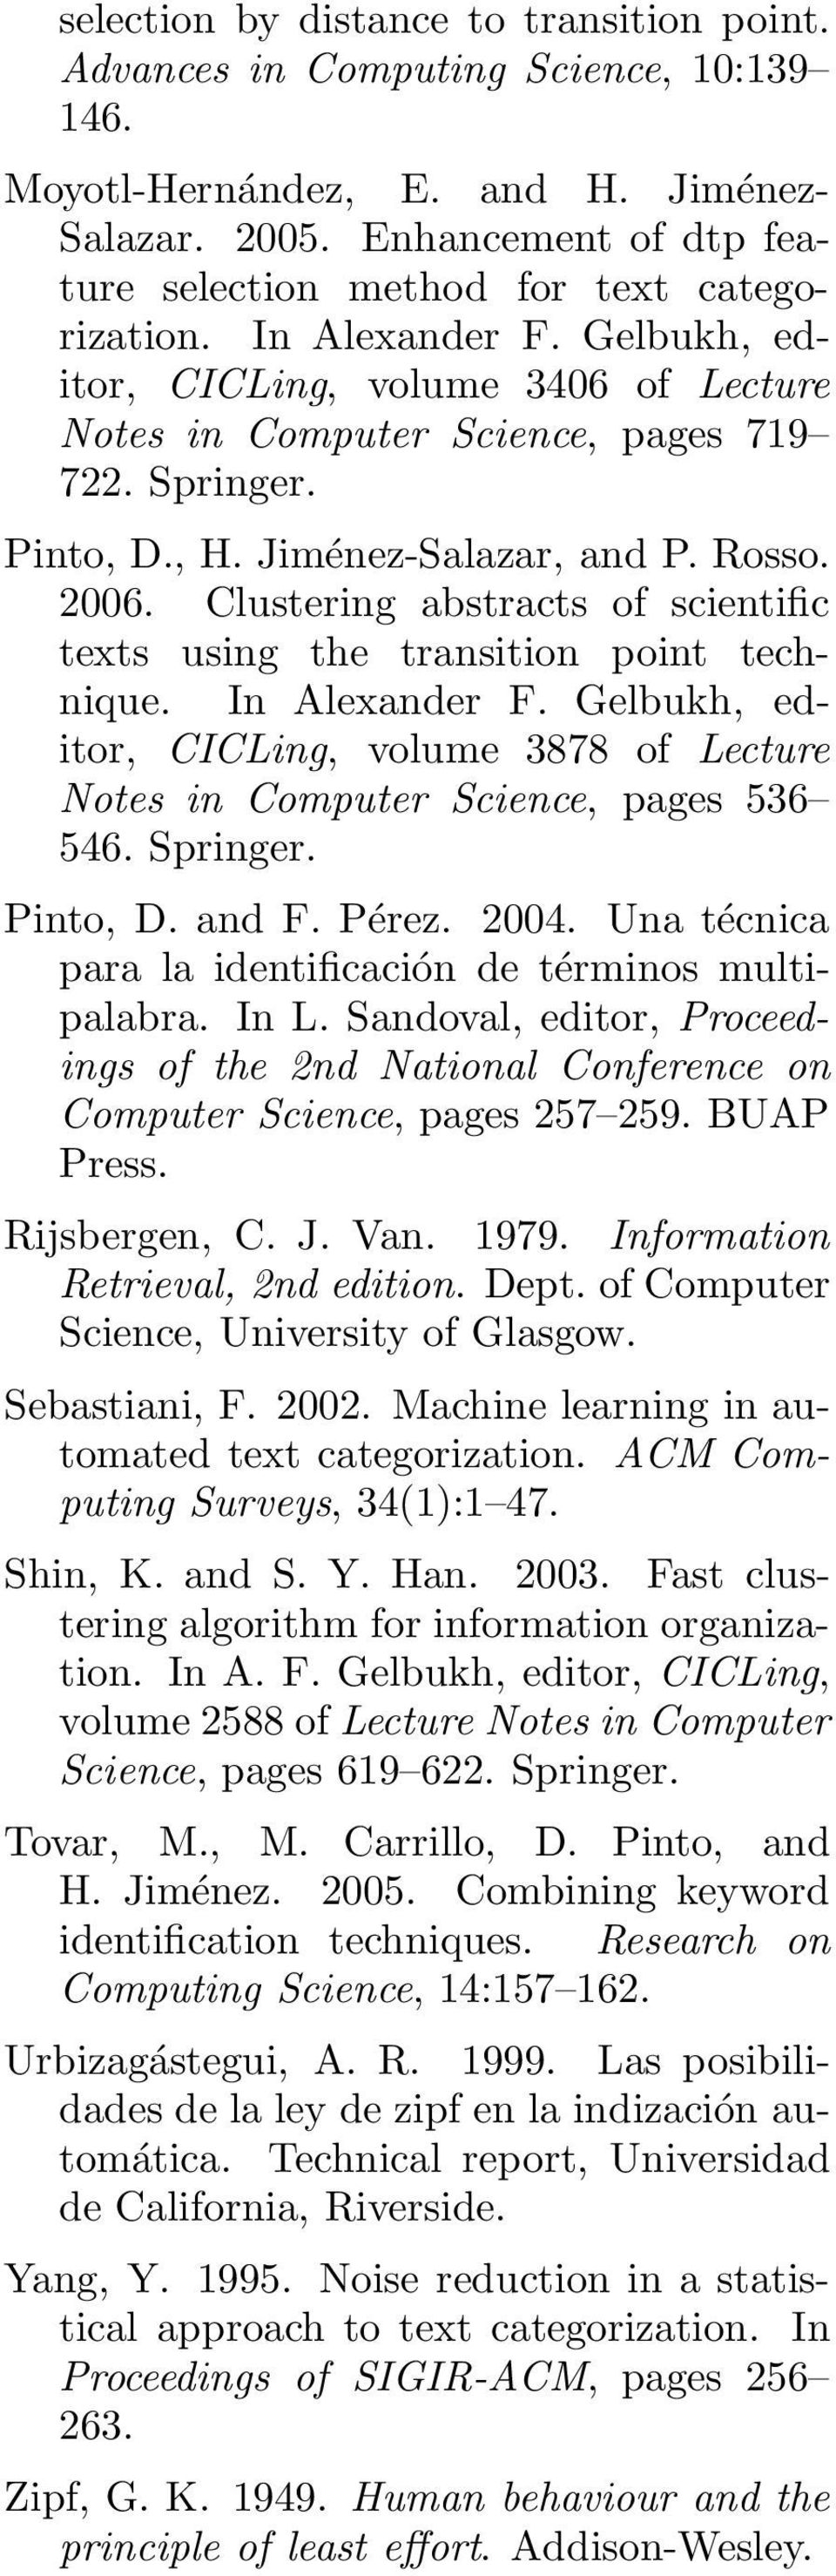 Jiménez-Salazar, and P. Rosso. 2006. Clustering abstracts of scientific texts using the transition point technique. In Alexander F.